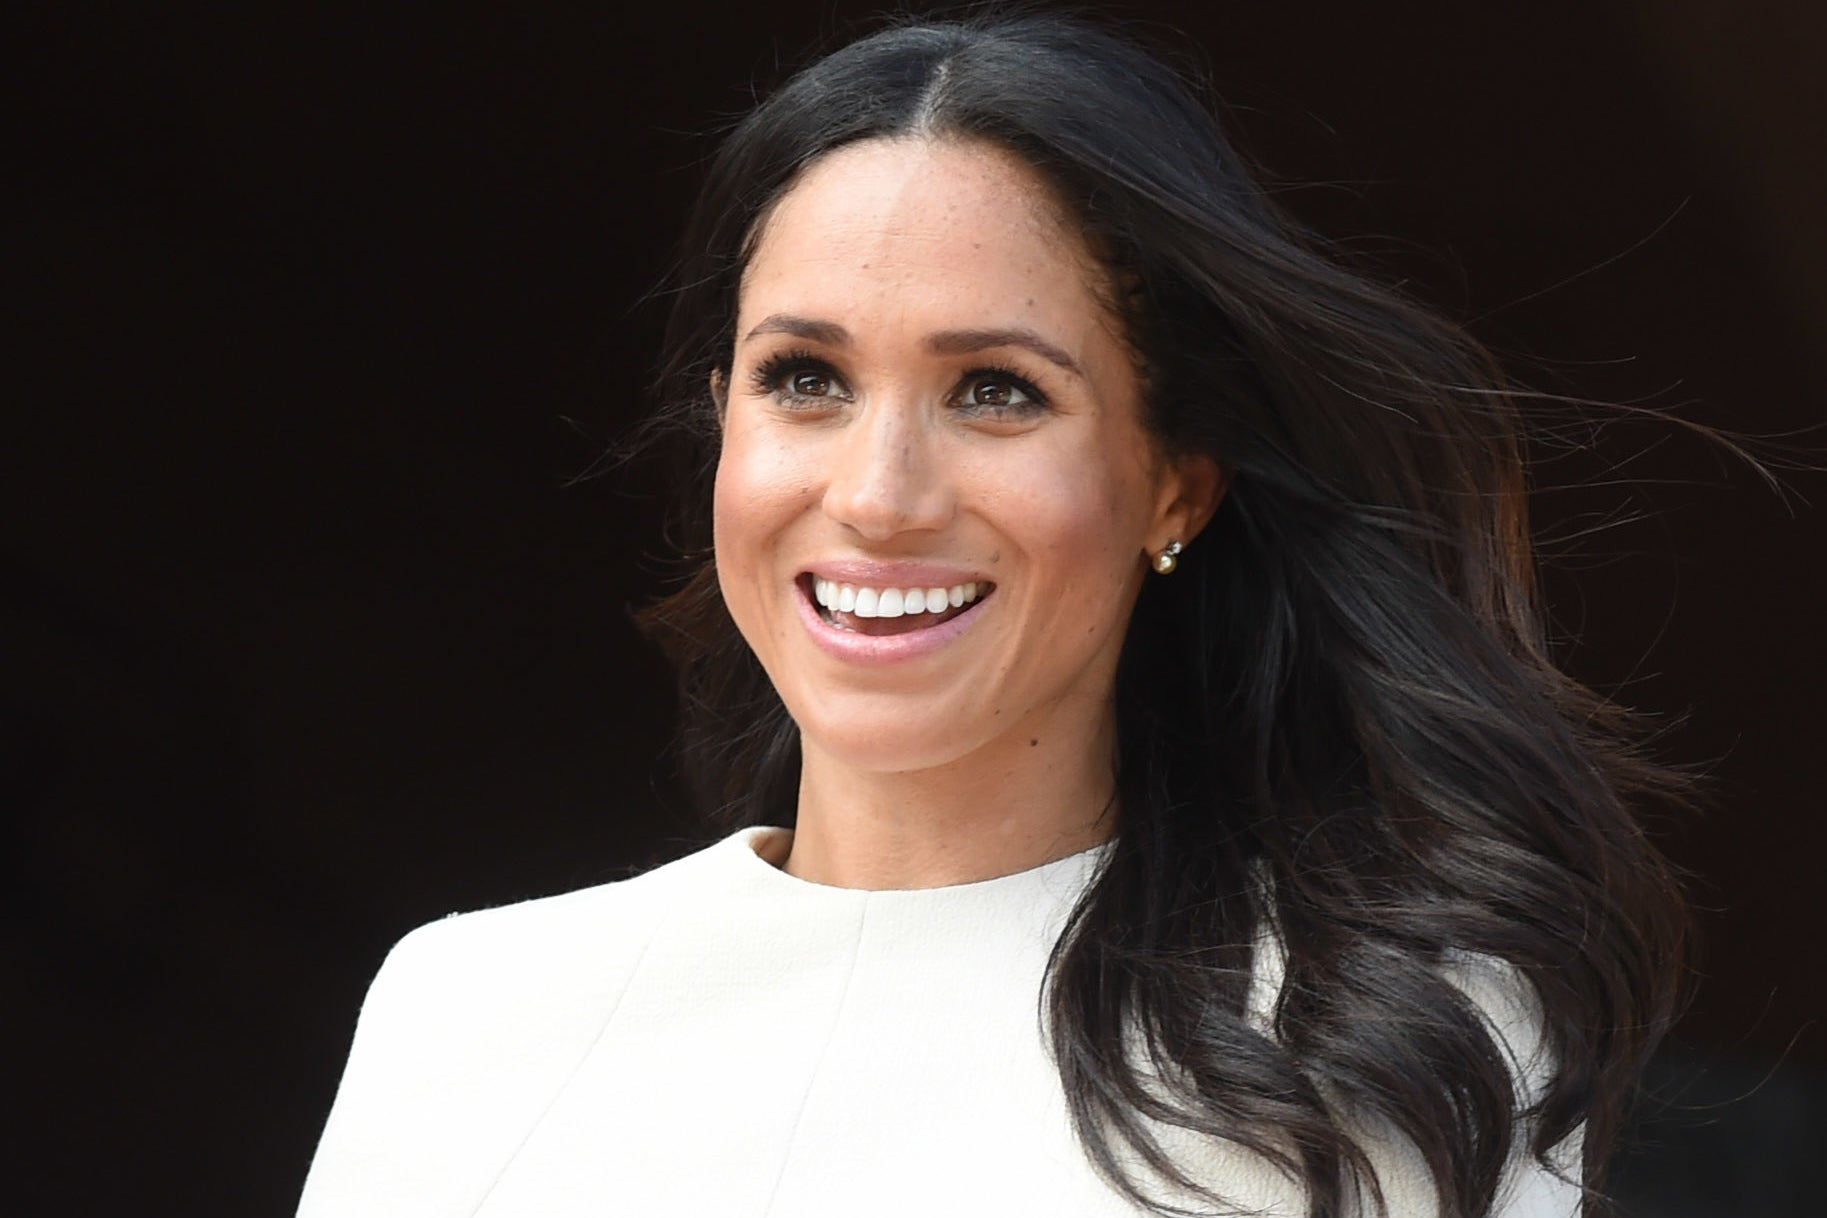 Meghan Markle Revealed She Had A Miscarriage In July And Opened Up About Her And Prince Harry's...